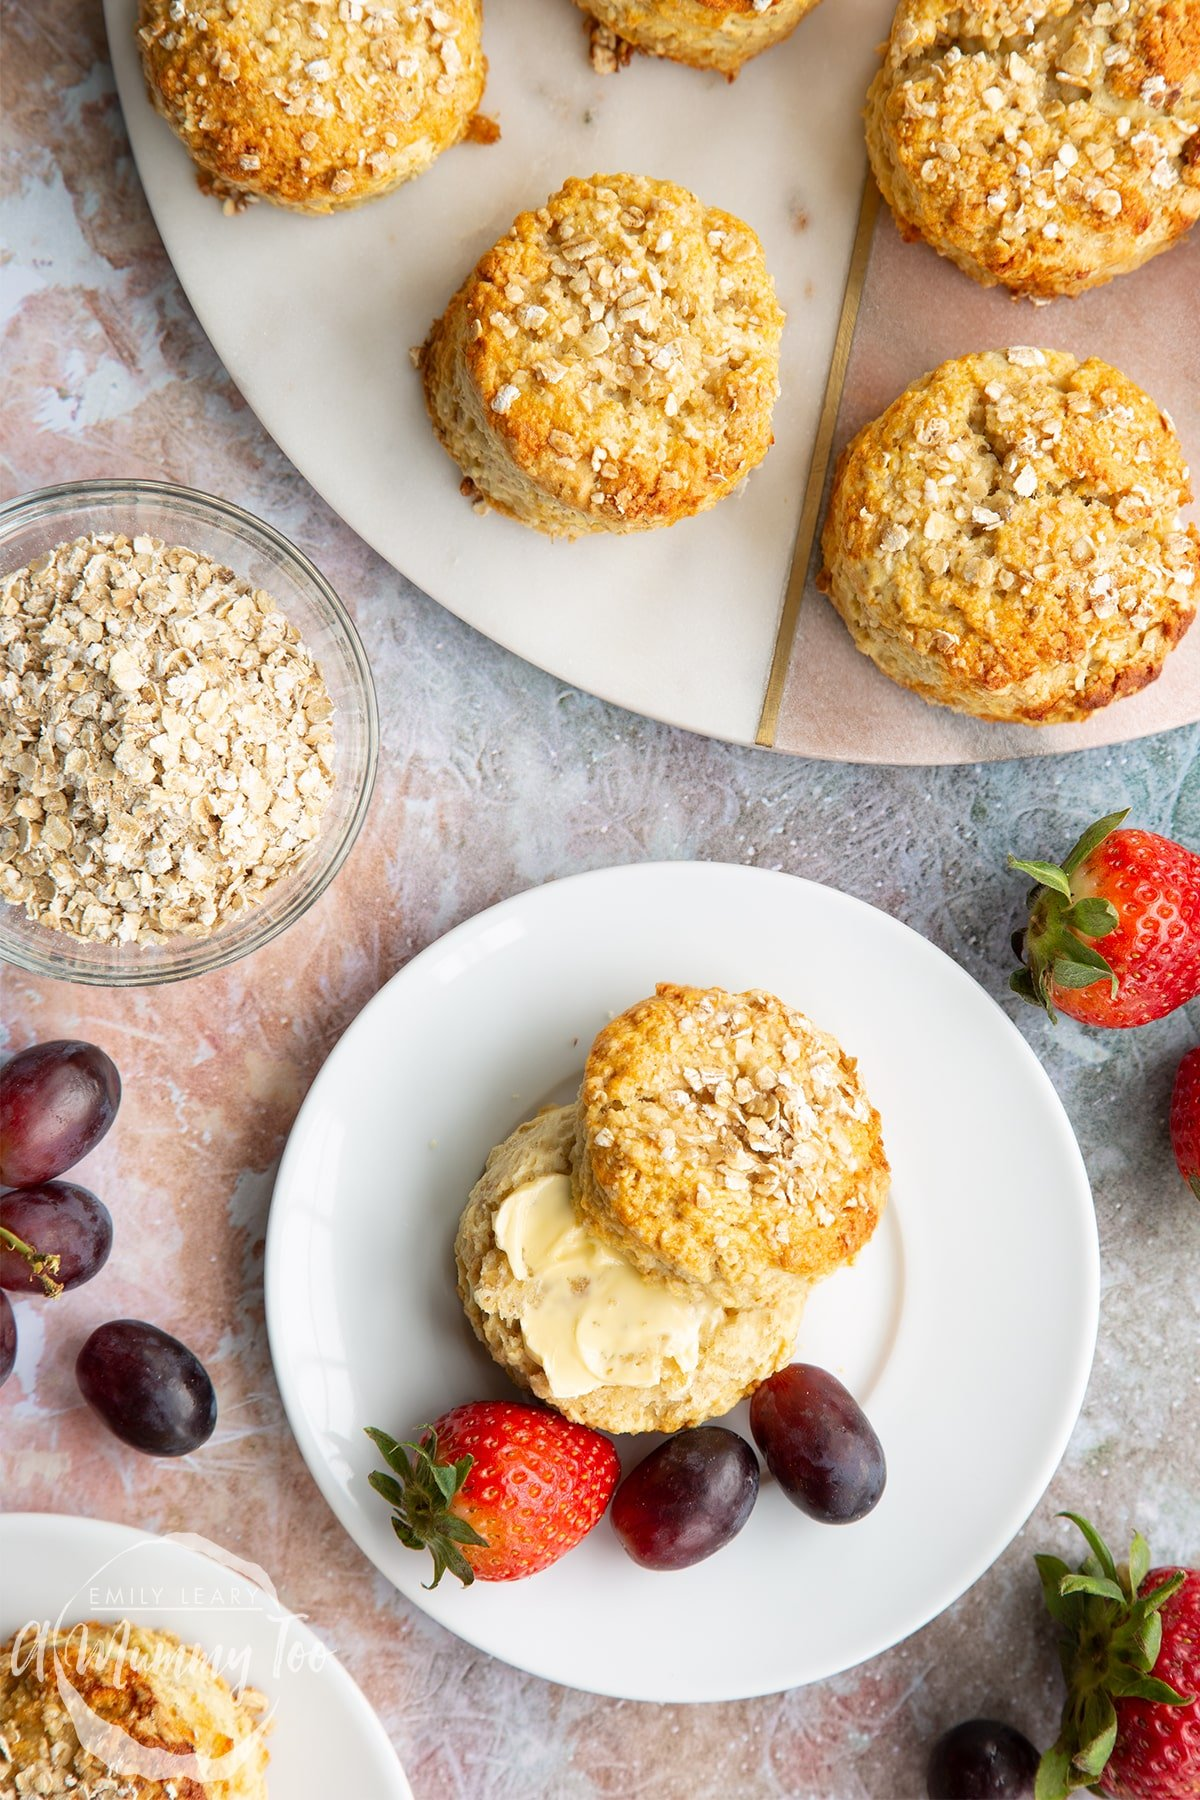 An oatmeal scone on a white plate with some fruit. Shown from above. There are more scones on a board to the edge of the frame.